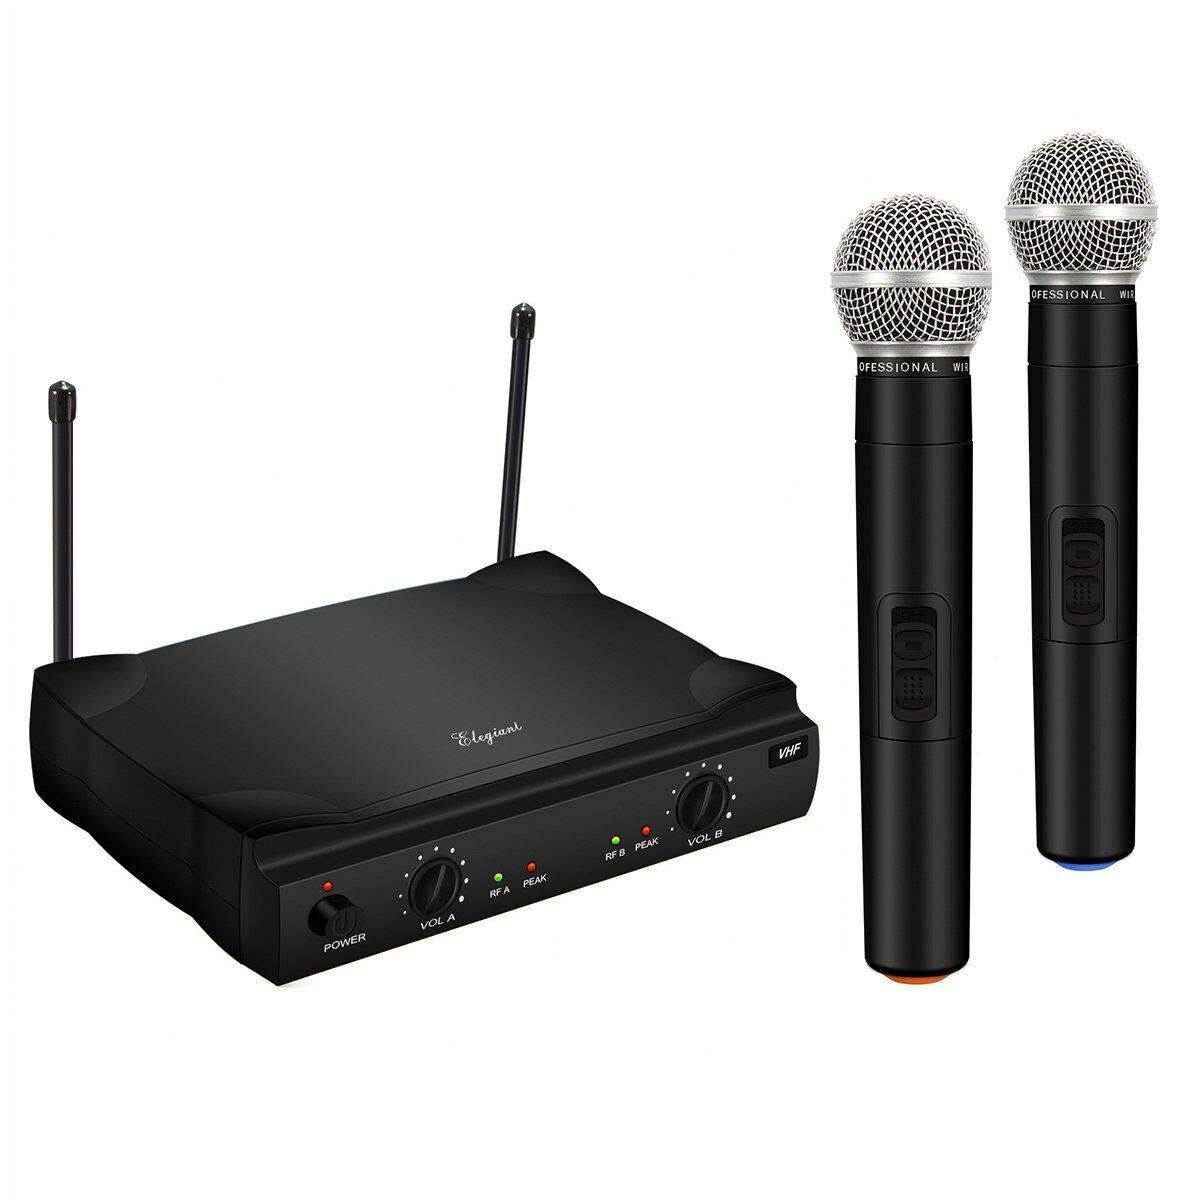 VHF Wireless Microphone System, Dual Channel Handheld Wireless Microphone with Professional Karaoke Receiver and 2 Handheld Dynamic Mics Set, for Home Party, KTV, Business Meeting, Wedding, Church